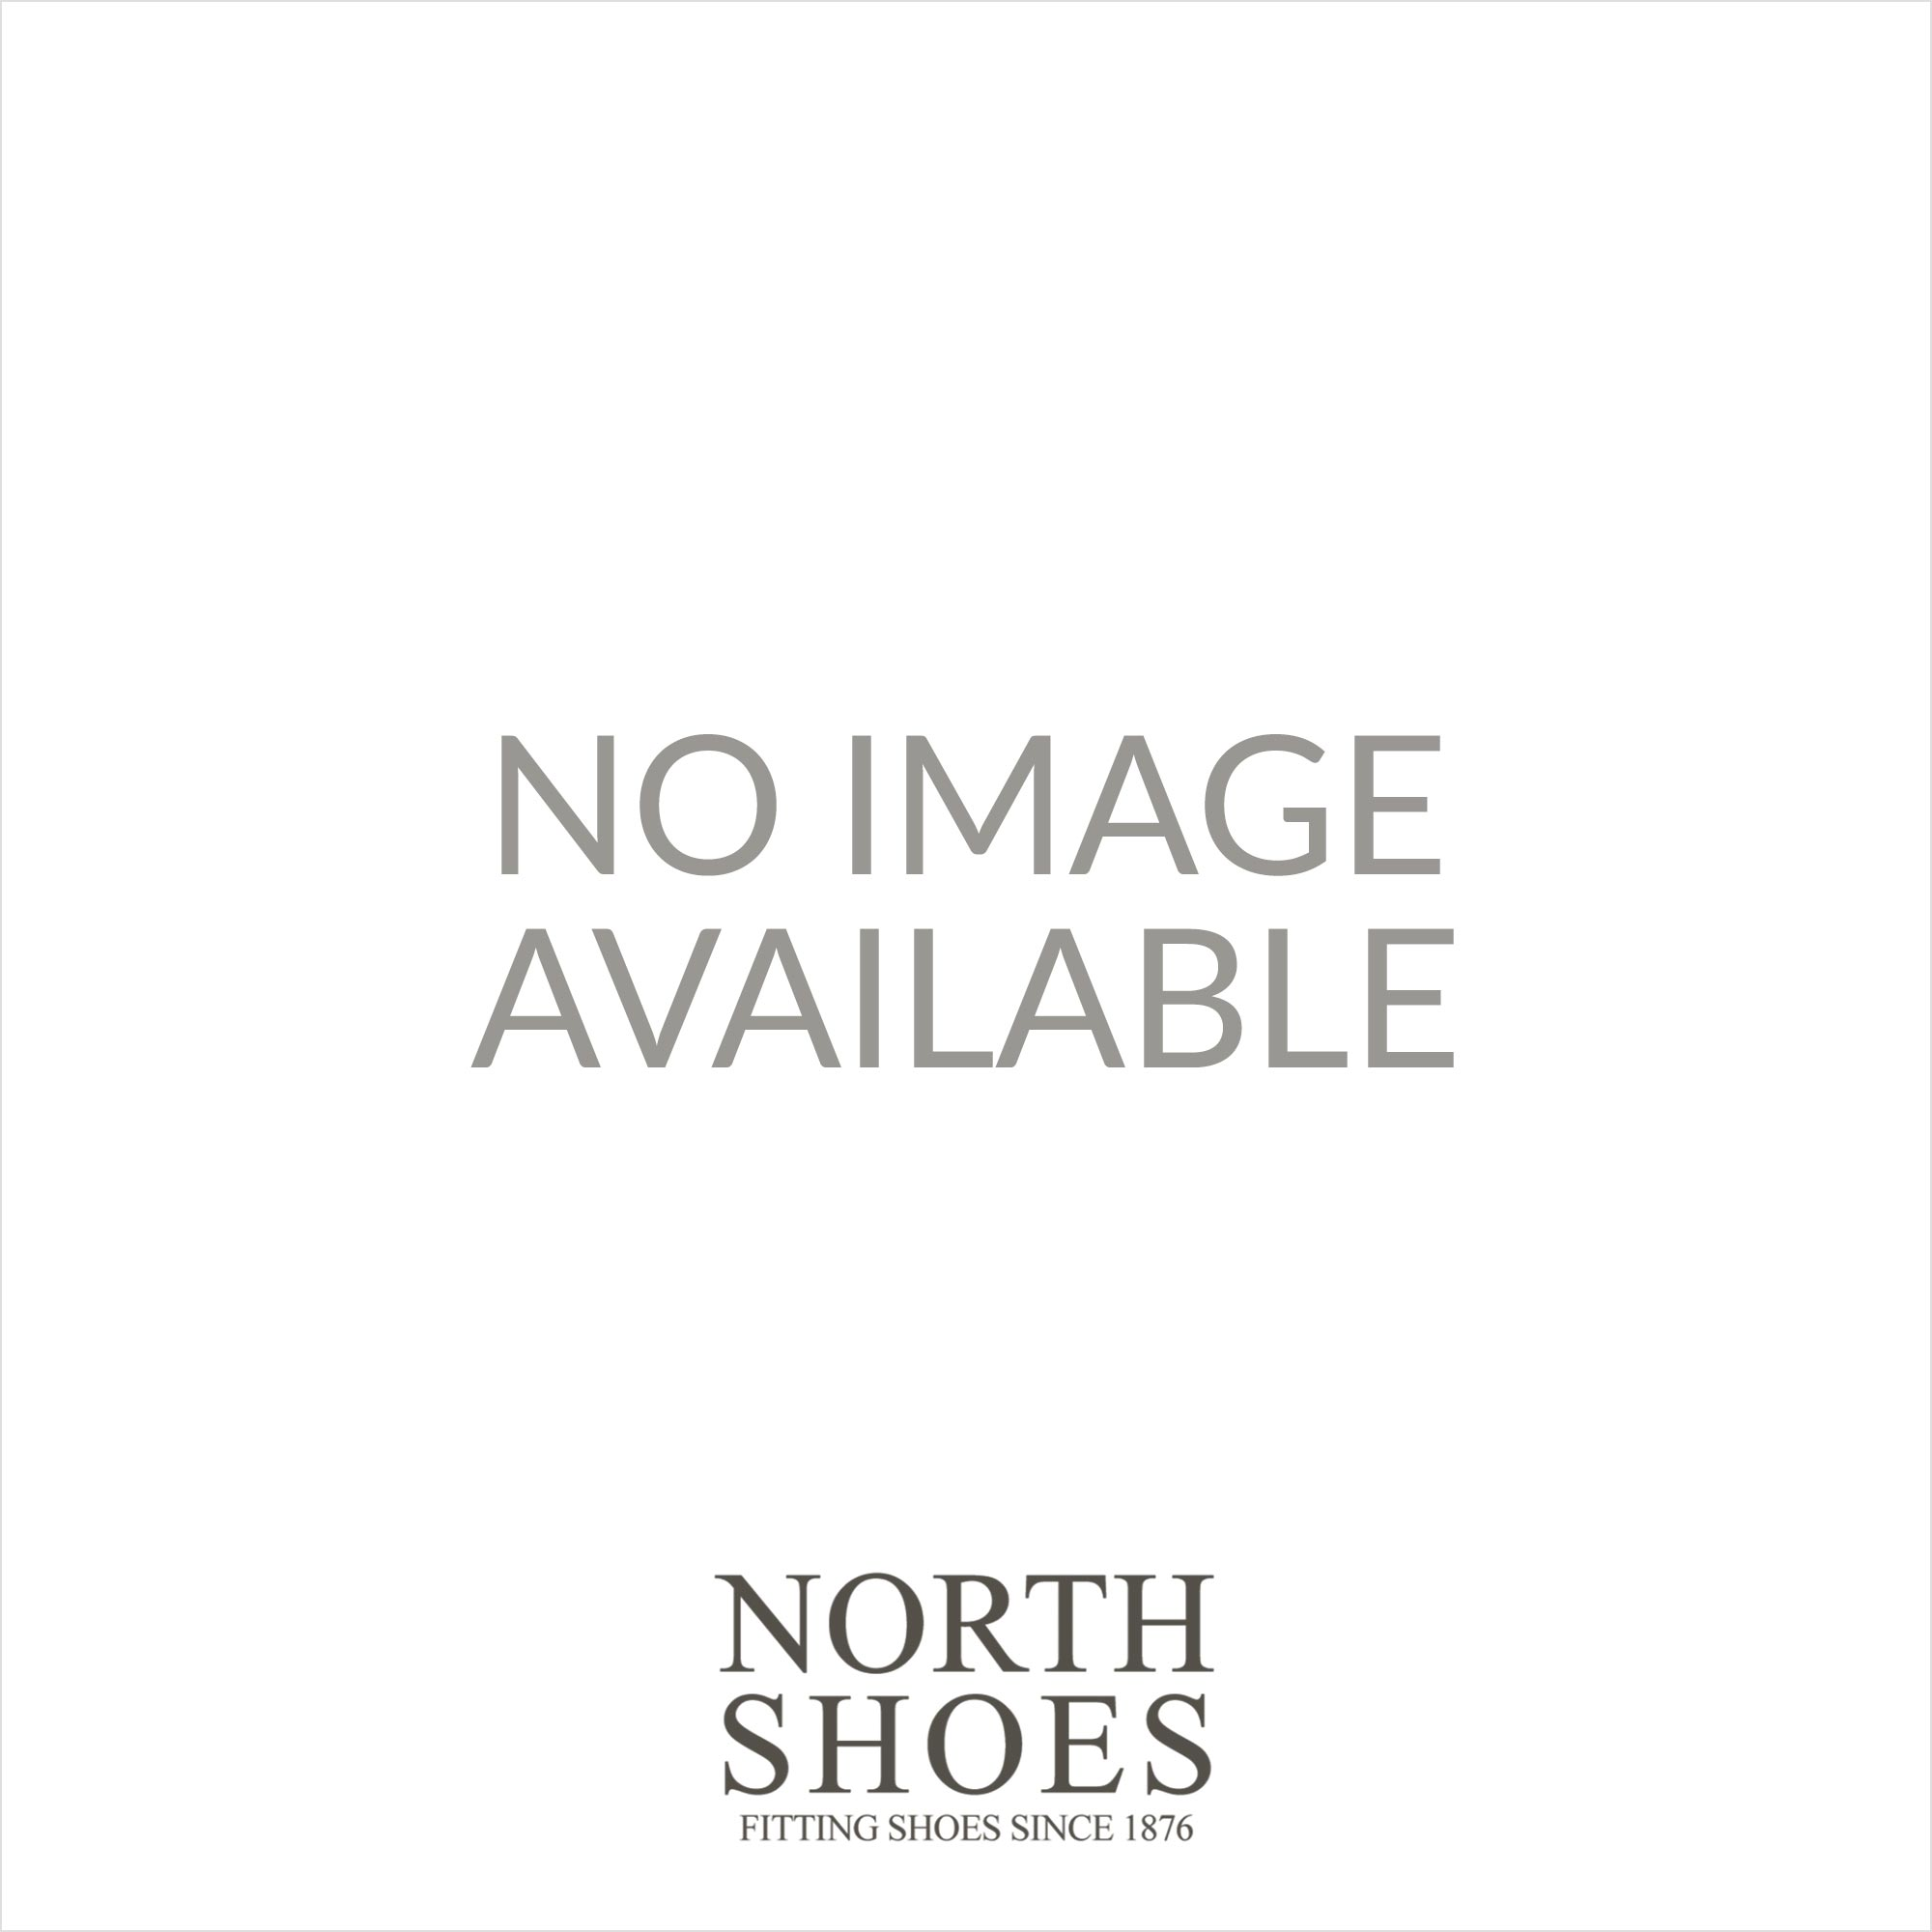 5a731d3f7bd Clarks Surfing Coast Blue Combination Boys Riptape Sandal - Clarks from  North Shoes UK